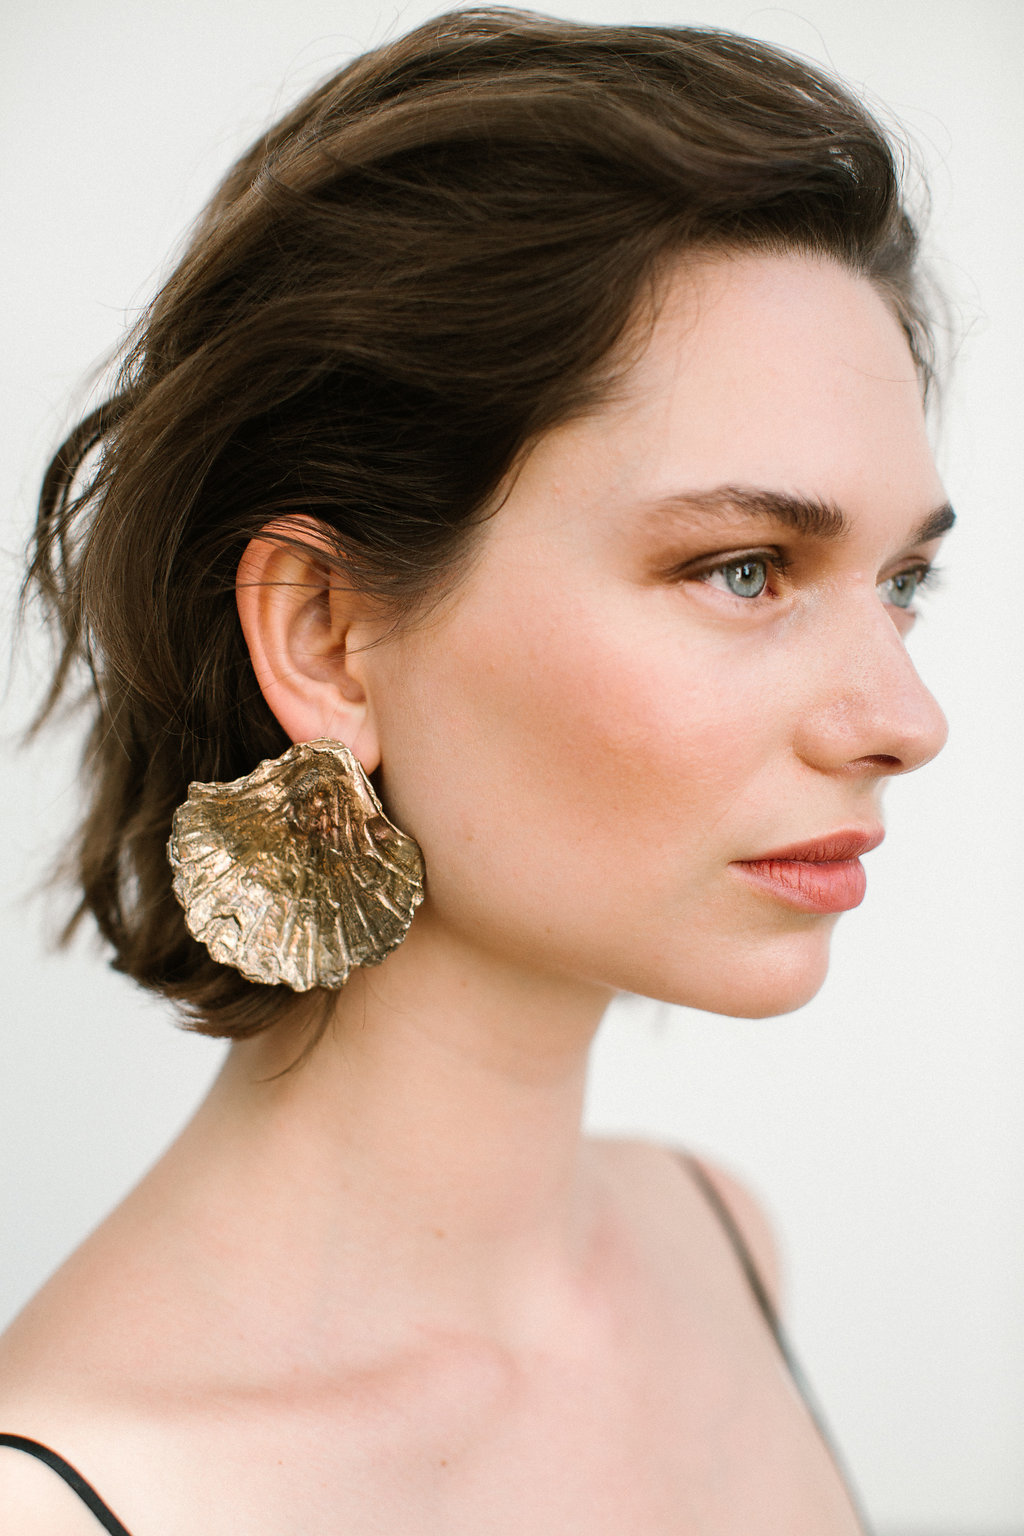 The Copia Earrings Sterling Silver Handmade by Naturae Design